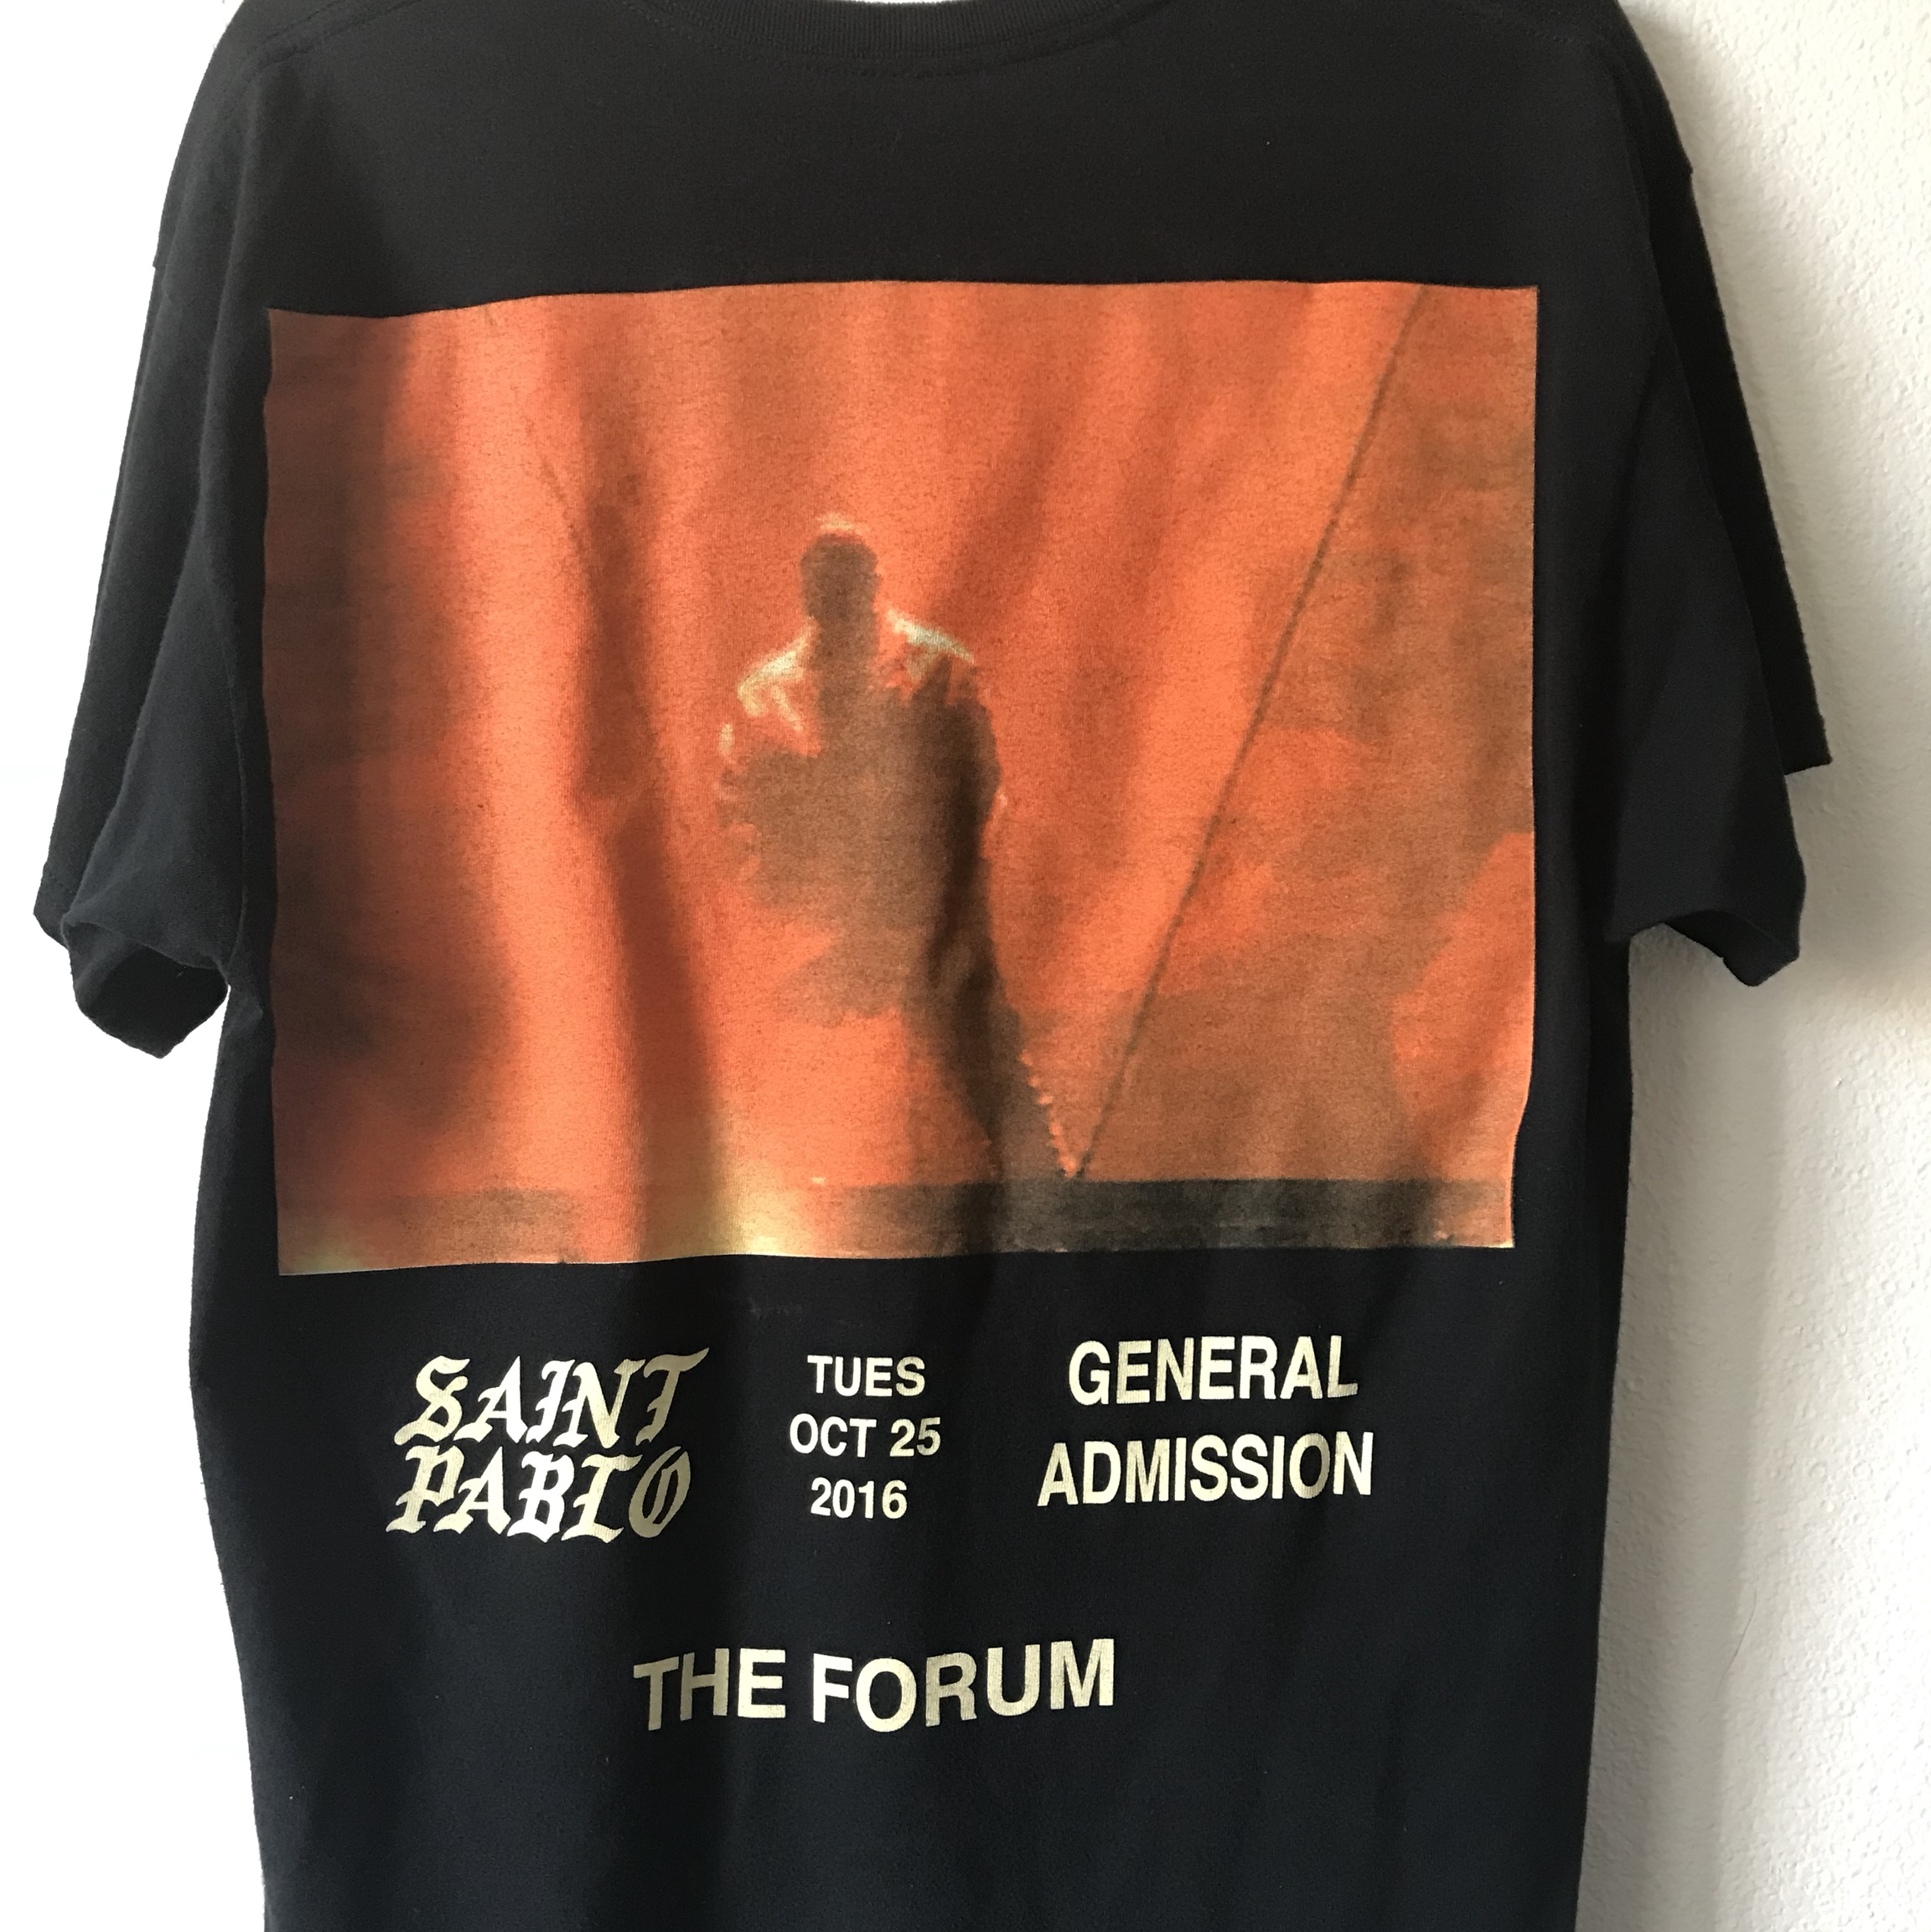 Kanye merch from tour date 10/25/16  I went and    - Depop